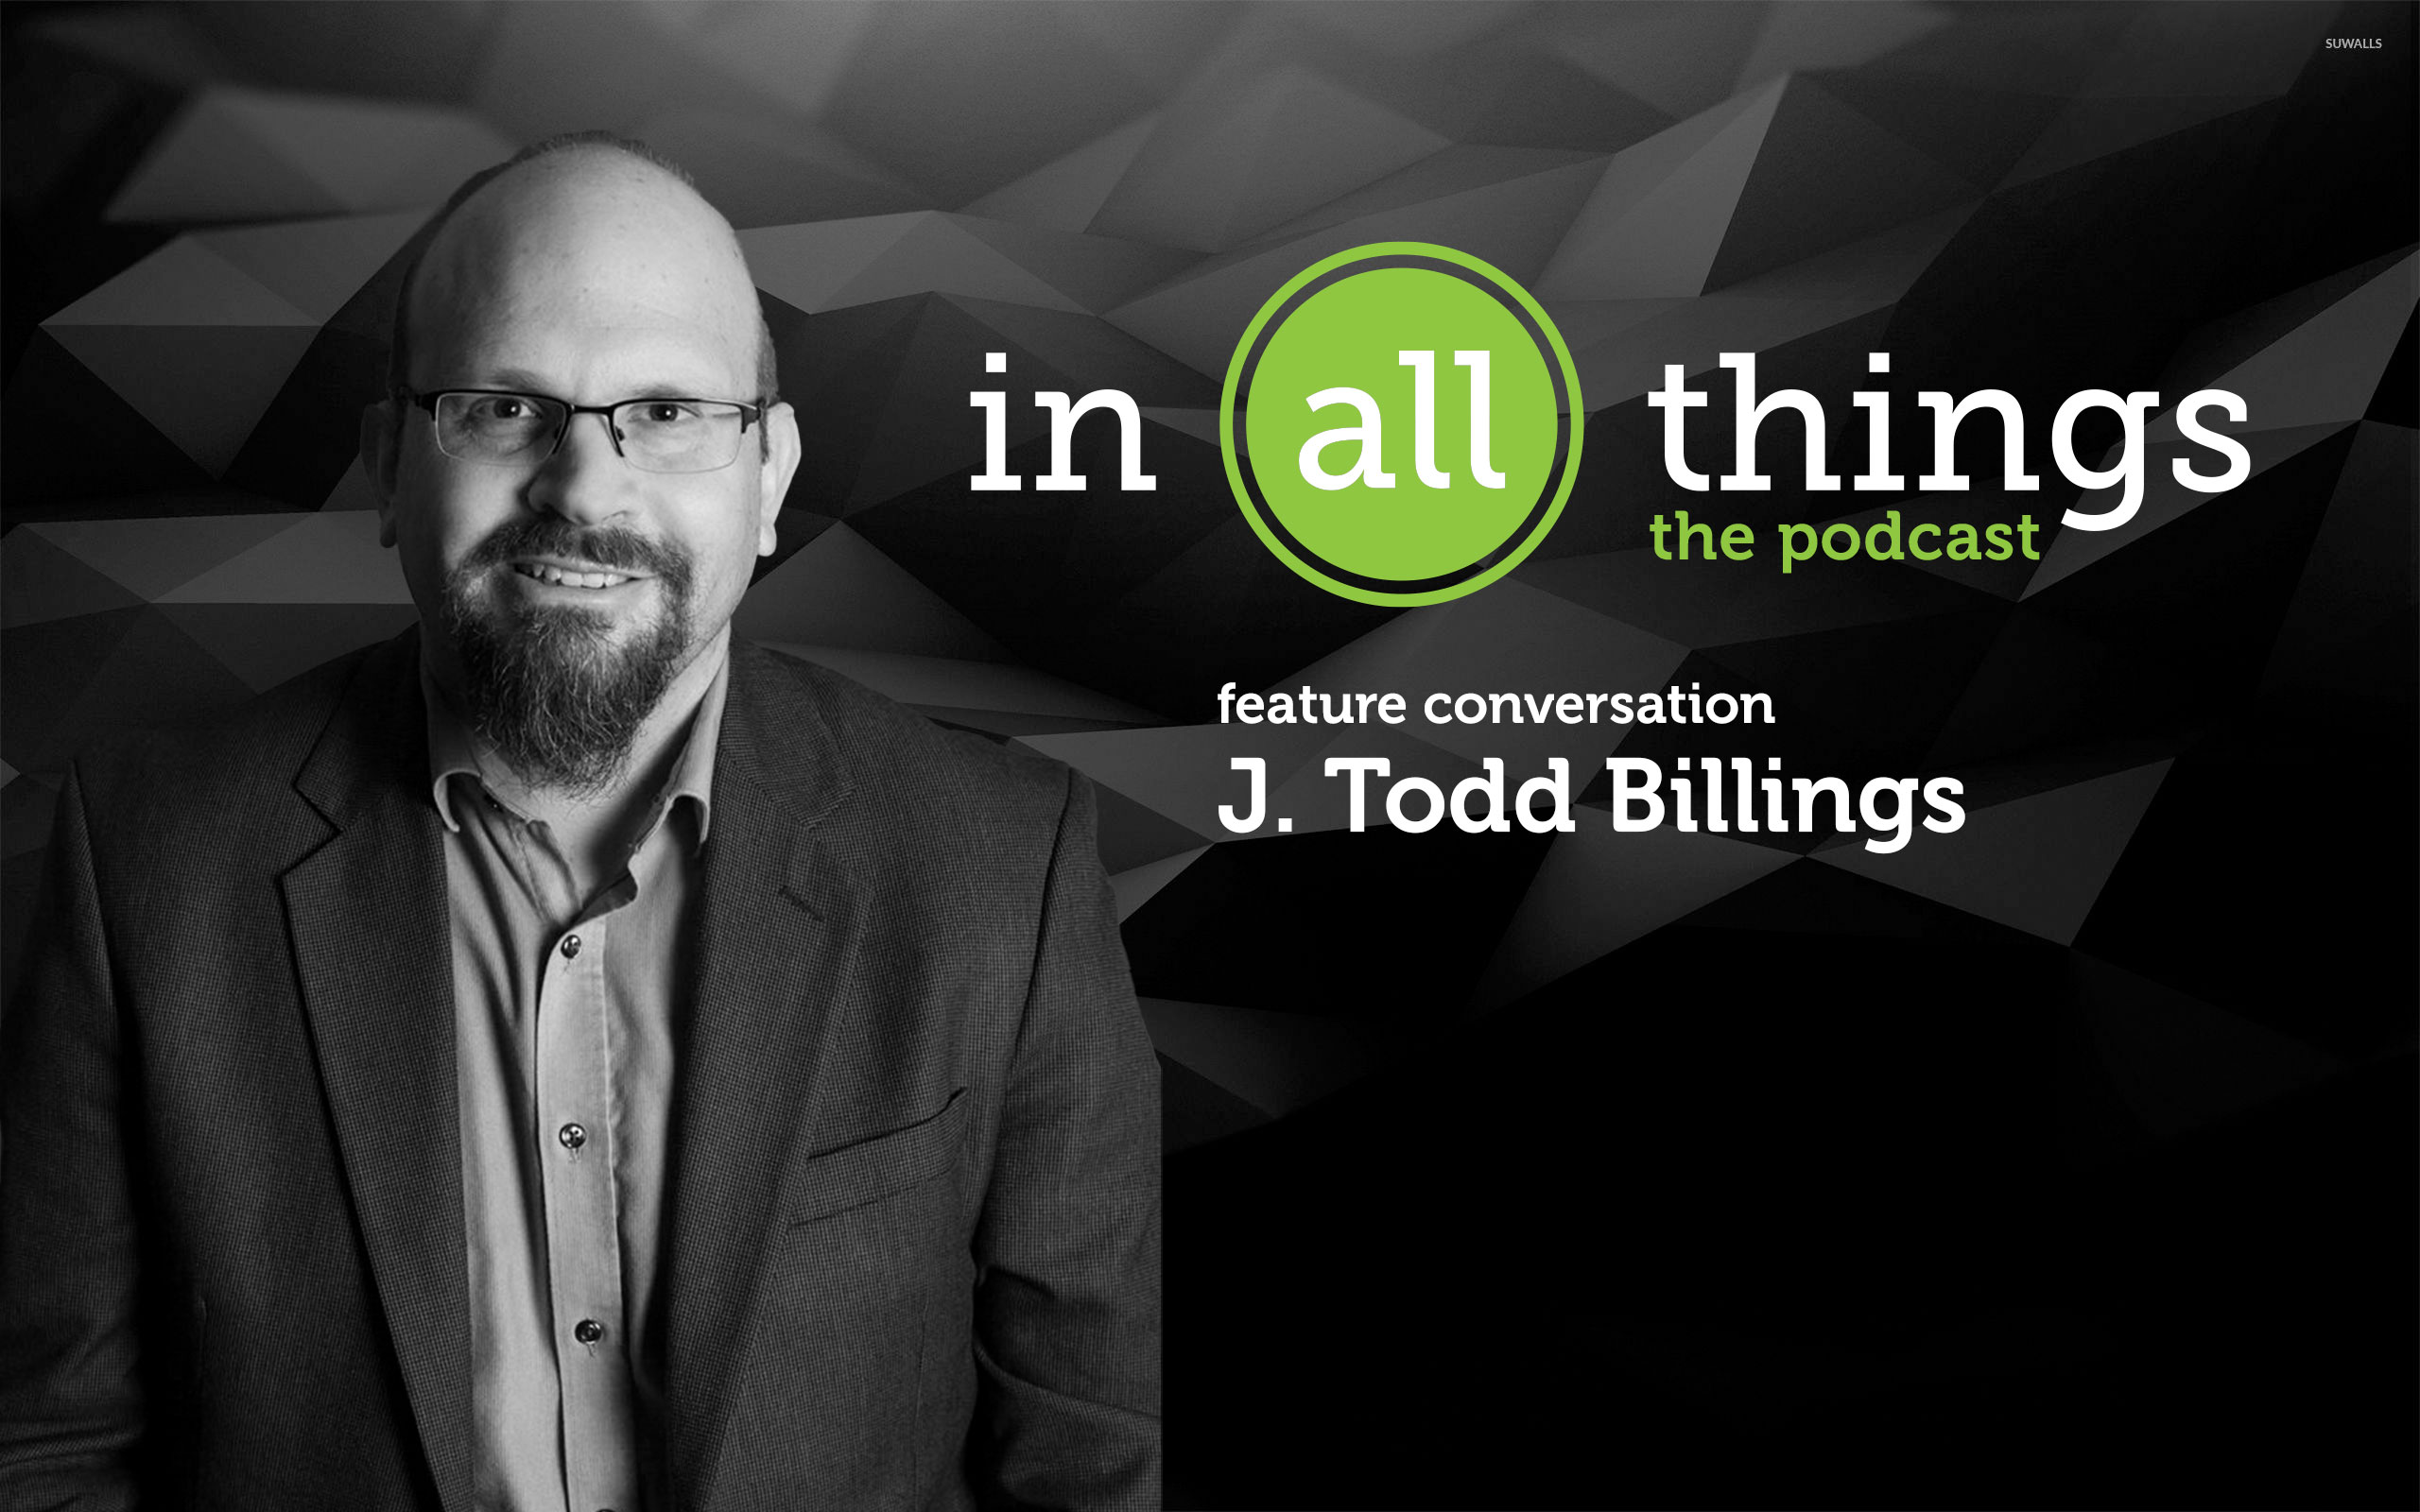 """Featured image for """"Podcast: DYING-Feature Conversation: J. Todd Billings"""""""